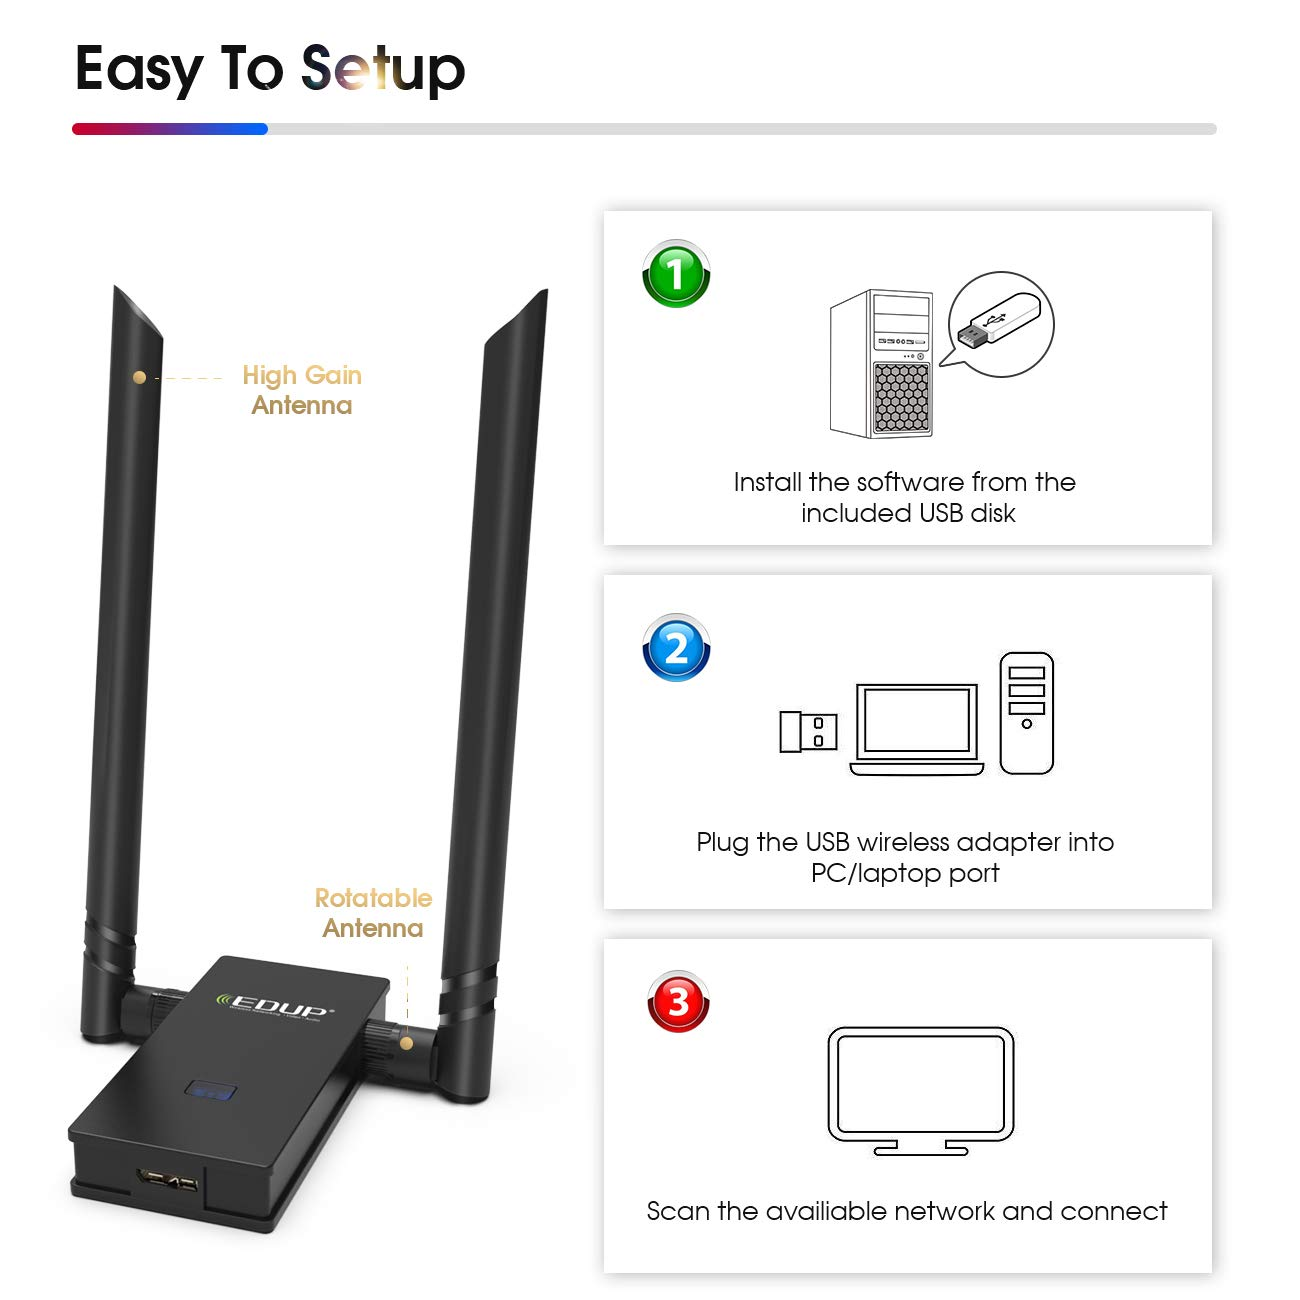 EDUP WiFi Adapter 1300Mbps USB 3.0 High Gain Wireless Adapter 802.11AC Dual Band with 5G//867Mbps 2.4G//400Mbps 6DBI External Dual Antennas Supports Windows 10//8.1//8//7//XP//Vista Mac OS X 10.7-10.13